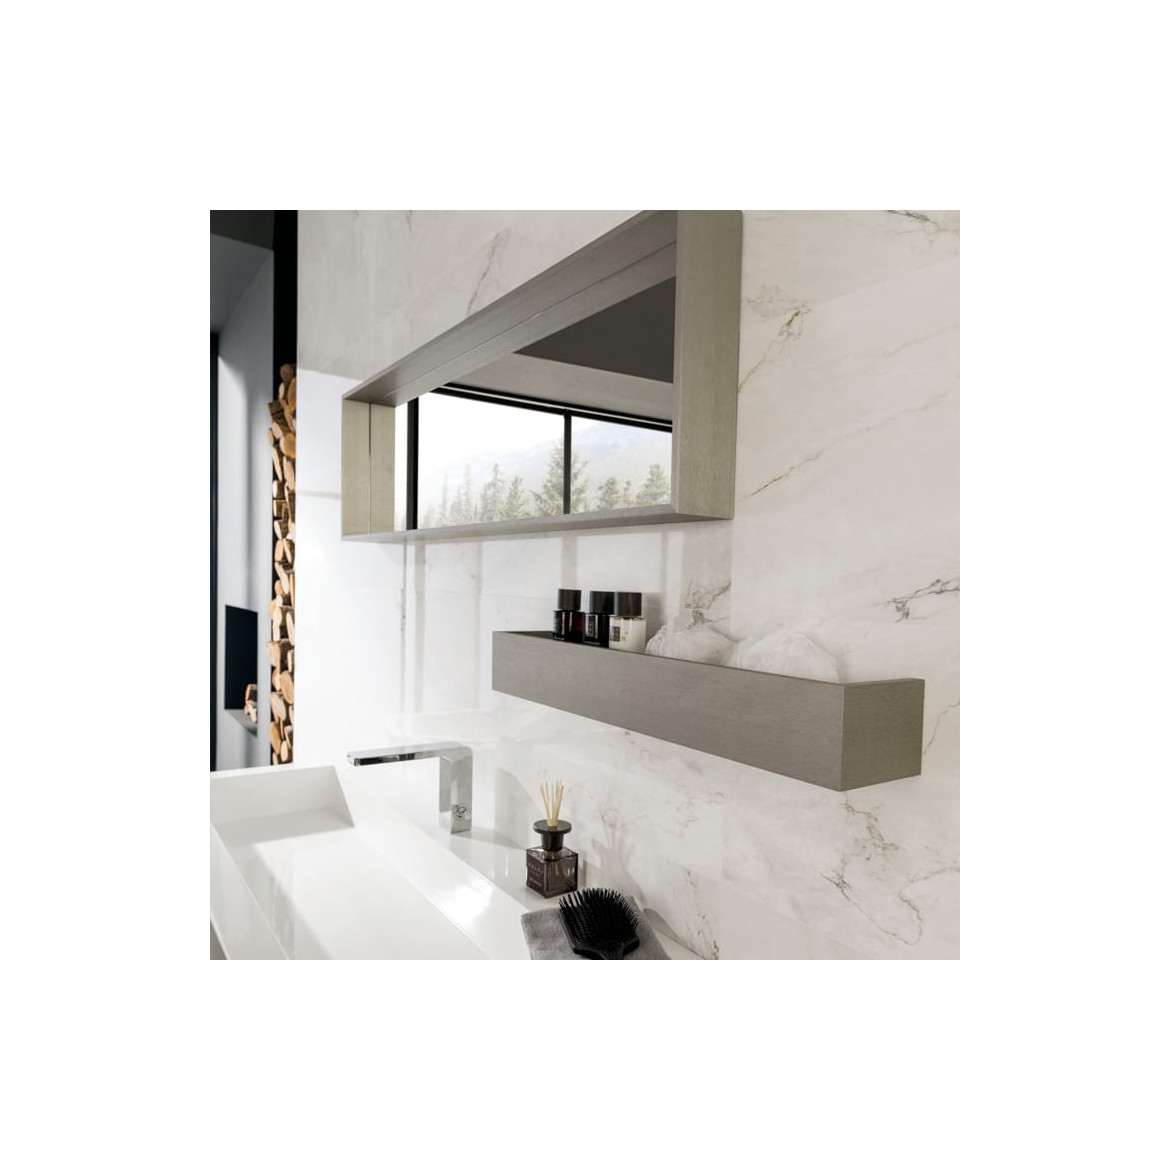 https://cerdesign.pl/2113-large_default/plytki-venis-bianco-carrara-45x120.jpg